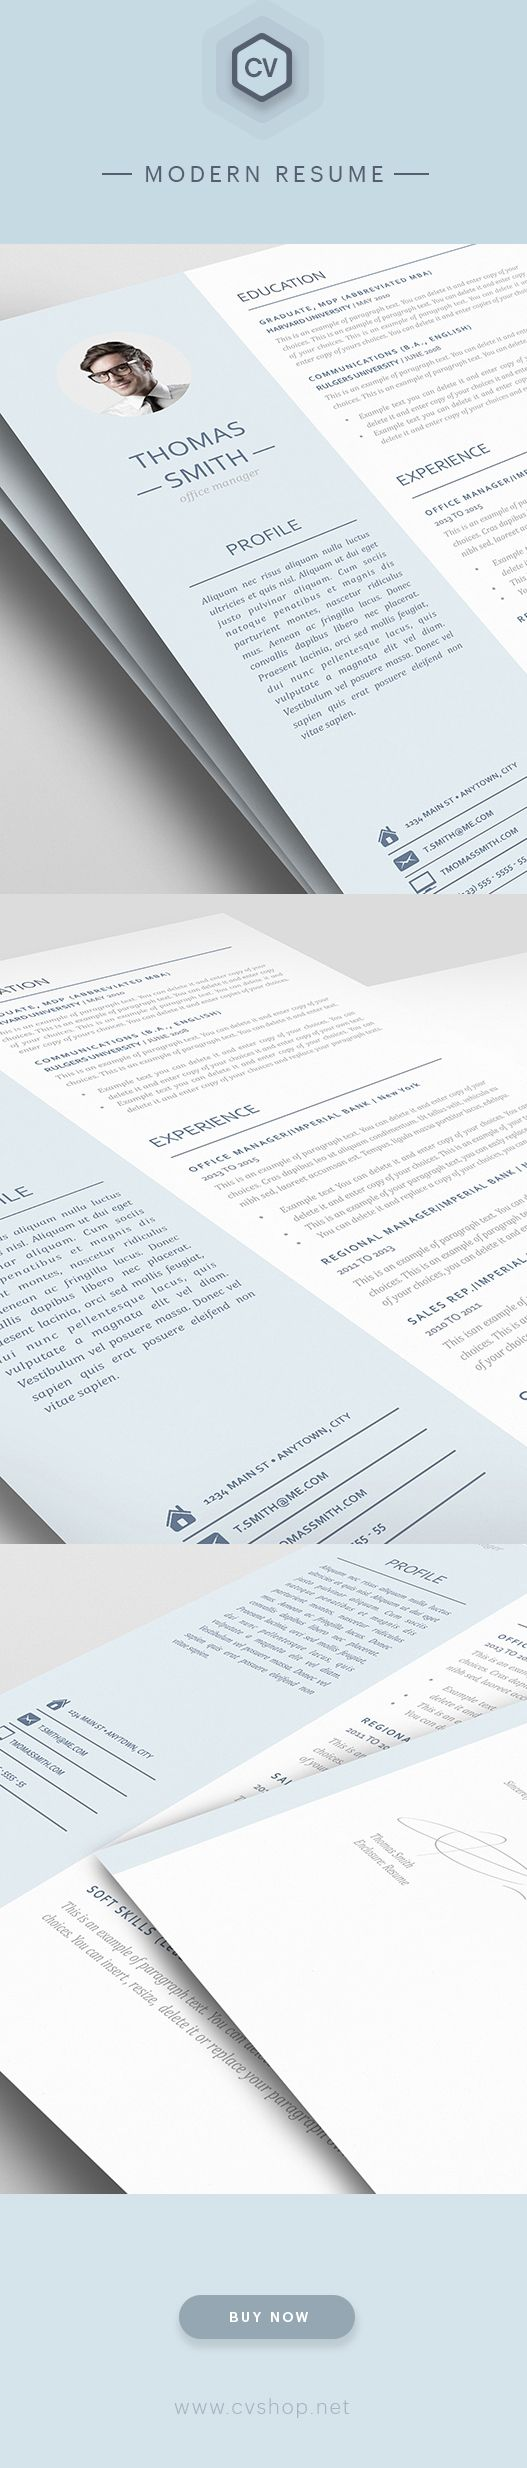 cover letters for educators%0A Modern Resume Template        is for anyone looking to create a  professional resume and cover letter with ease  Edit in MS Word and iWork  Pages